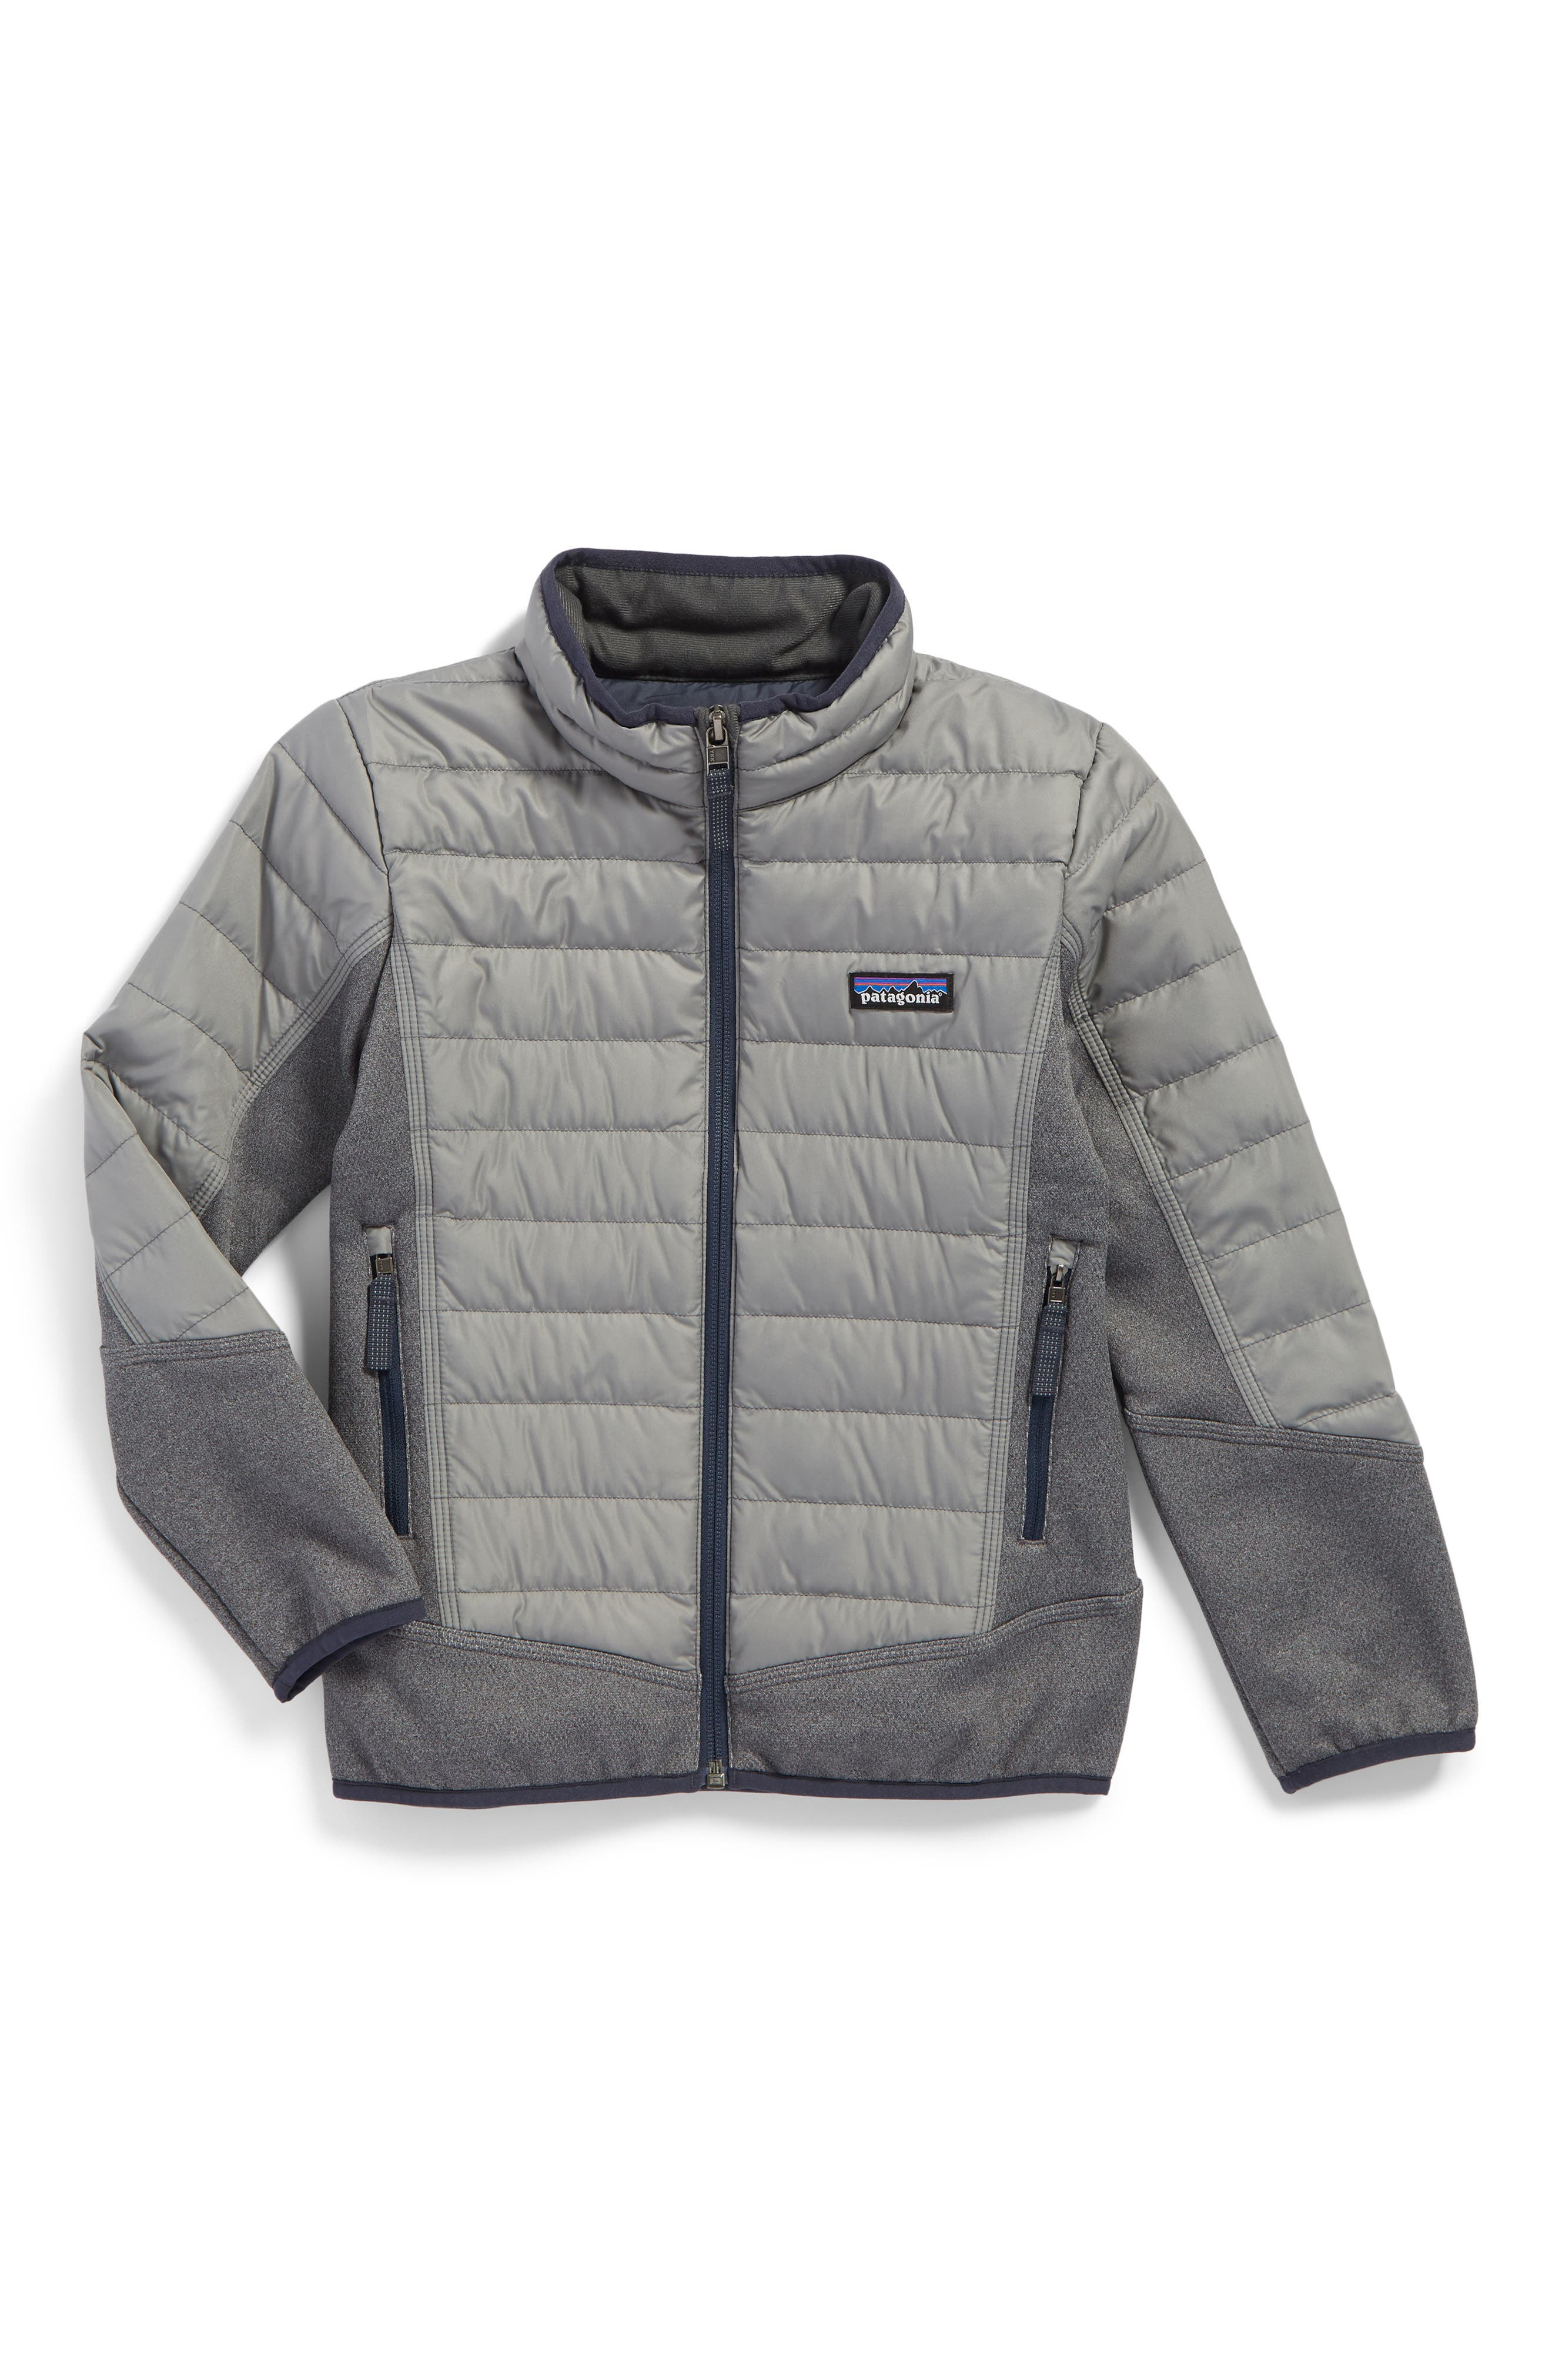 600-Fill Power Down Water-Repellent Hybrid Jacket,                             Main thumbnail 1, color,                             Feather Grey